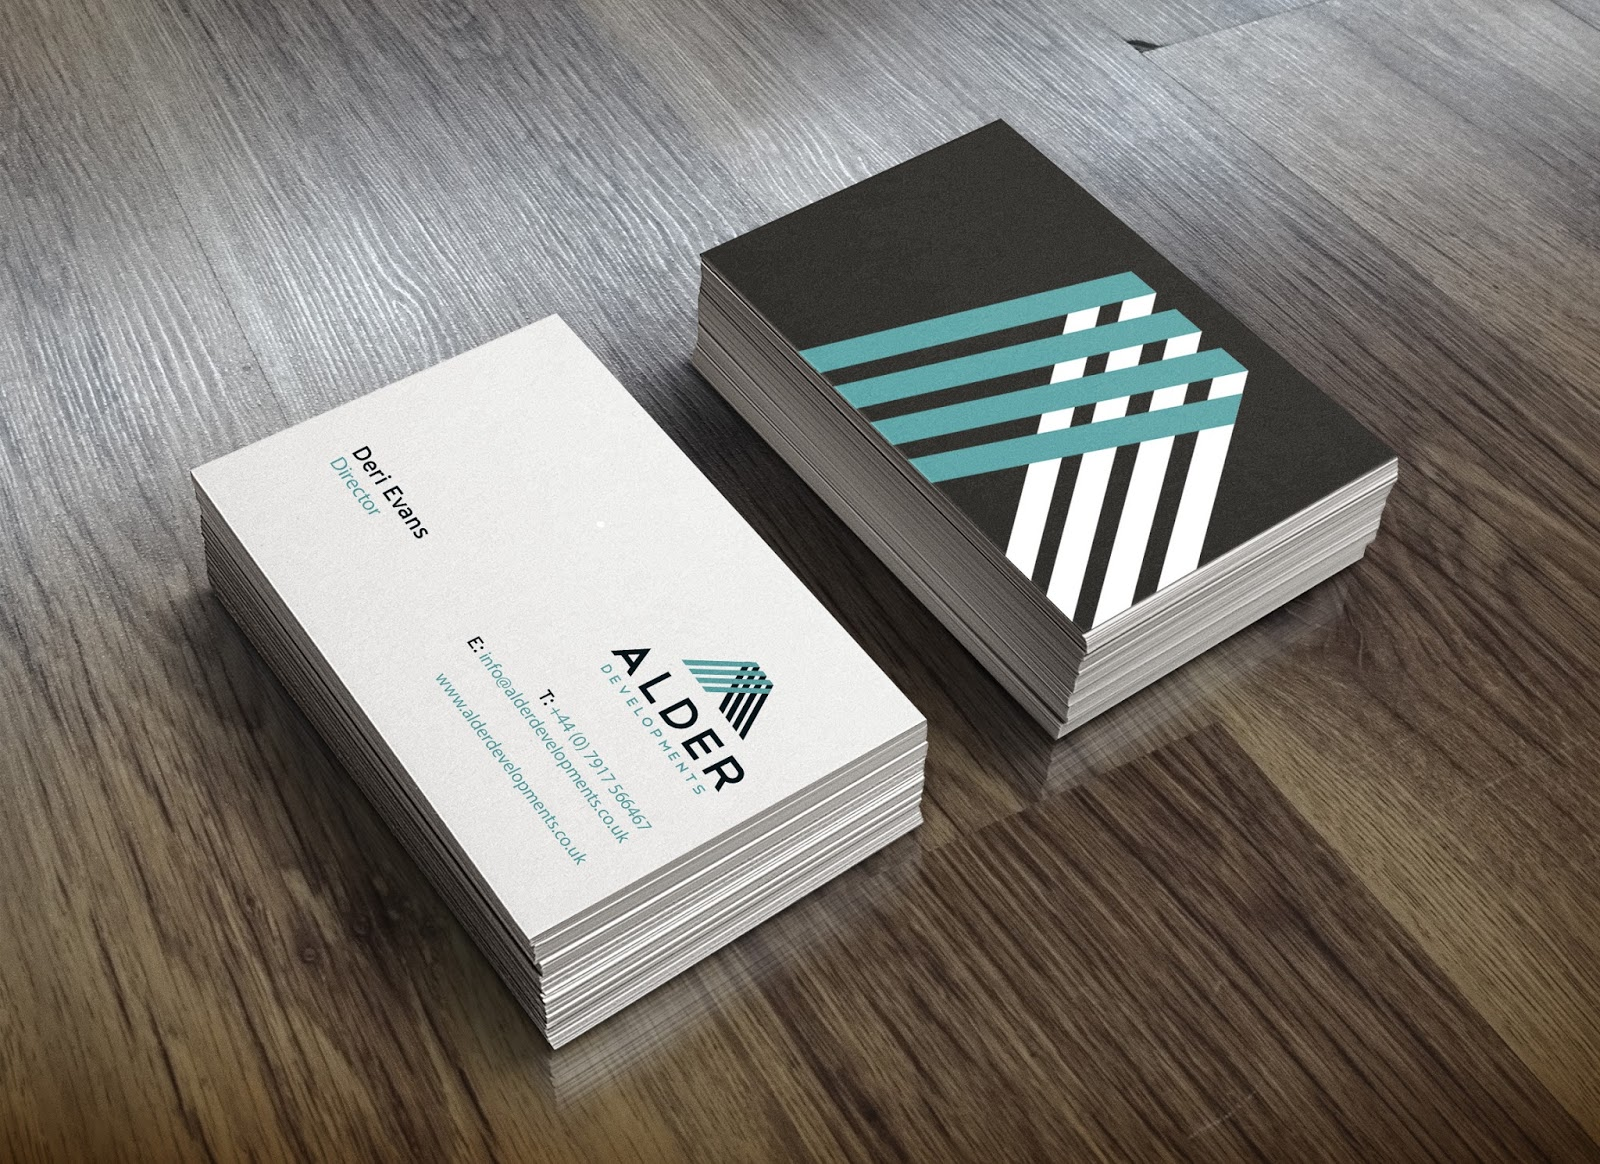 High Quality Business Cards - Business Card Tips